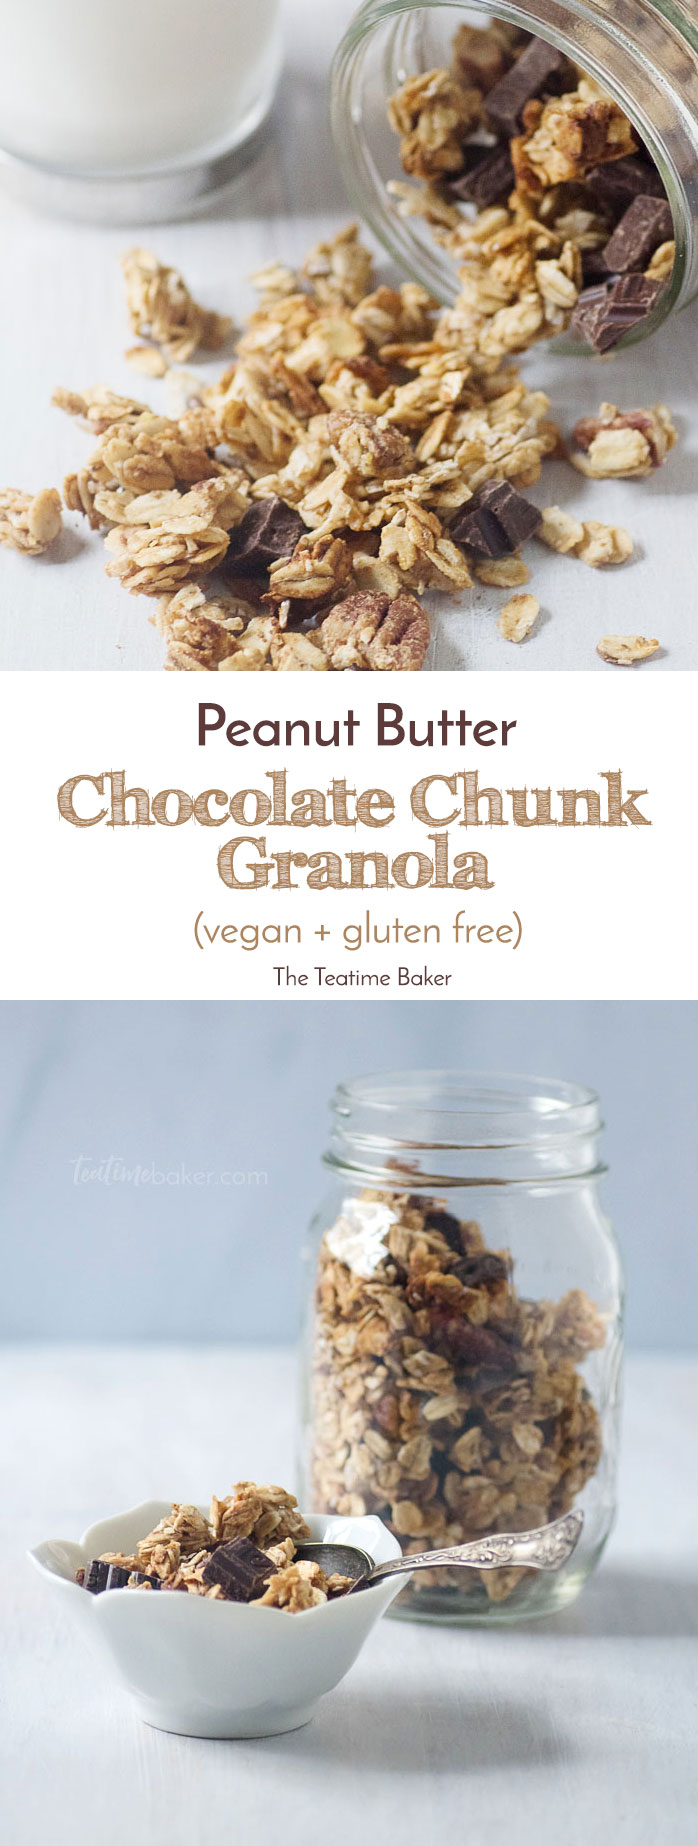 Healthy Peanut Butter Chocolate Chunk Granola